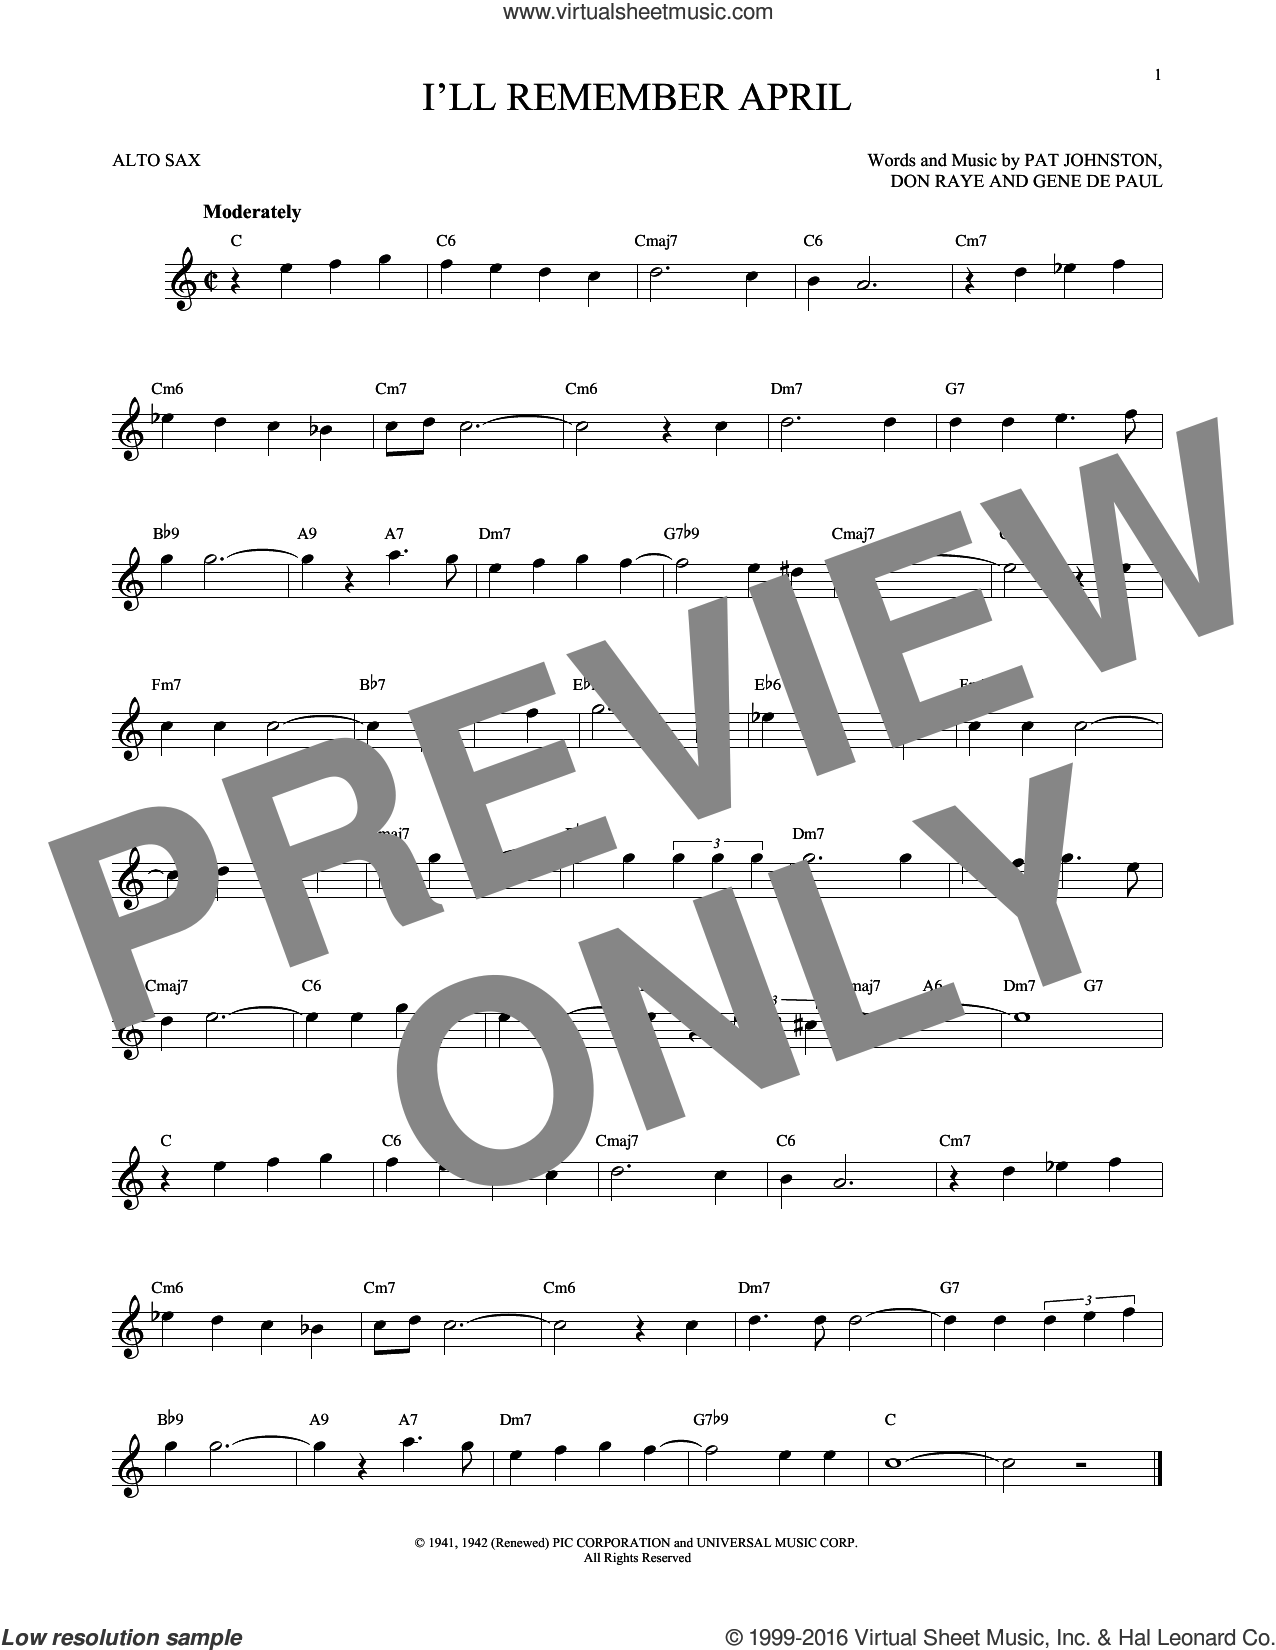 I'll Remember April sheet music for alto saxophone solo by Woody Herman & His Orchestra, Don Raye and Gene DePaul, intermediate alto saxophone. Score Image Preview.